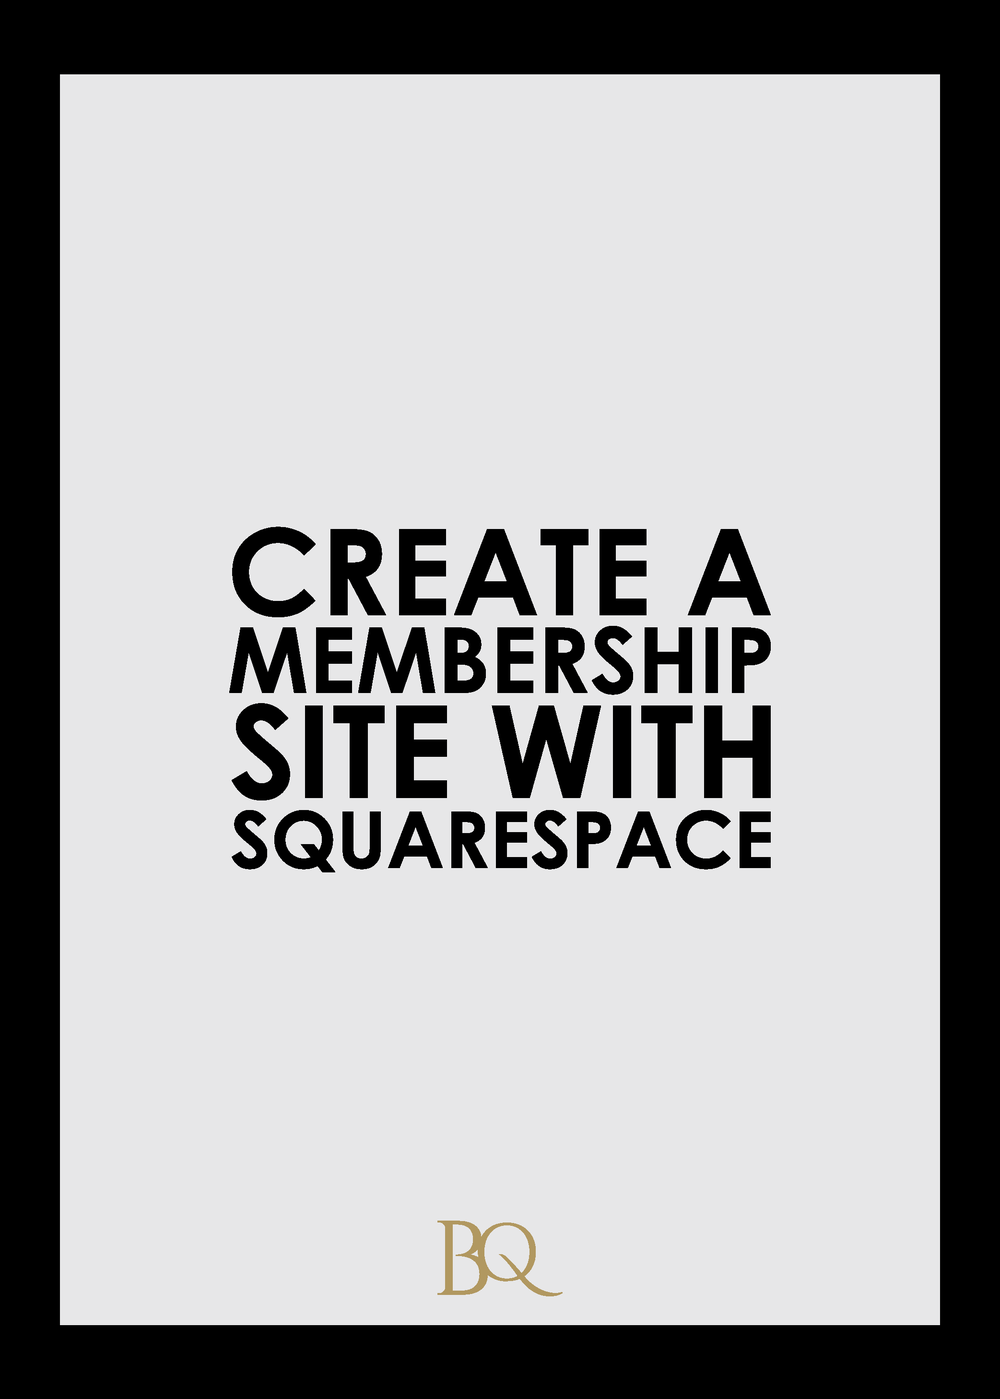 Learn how to create a membership site with Squarespace